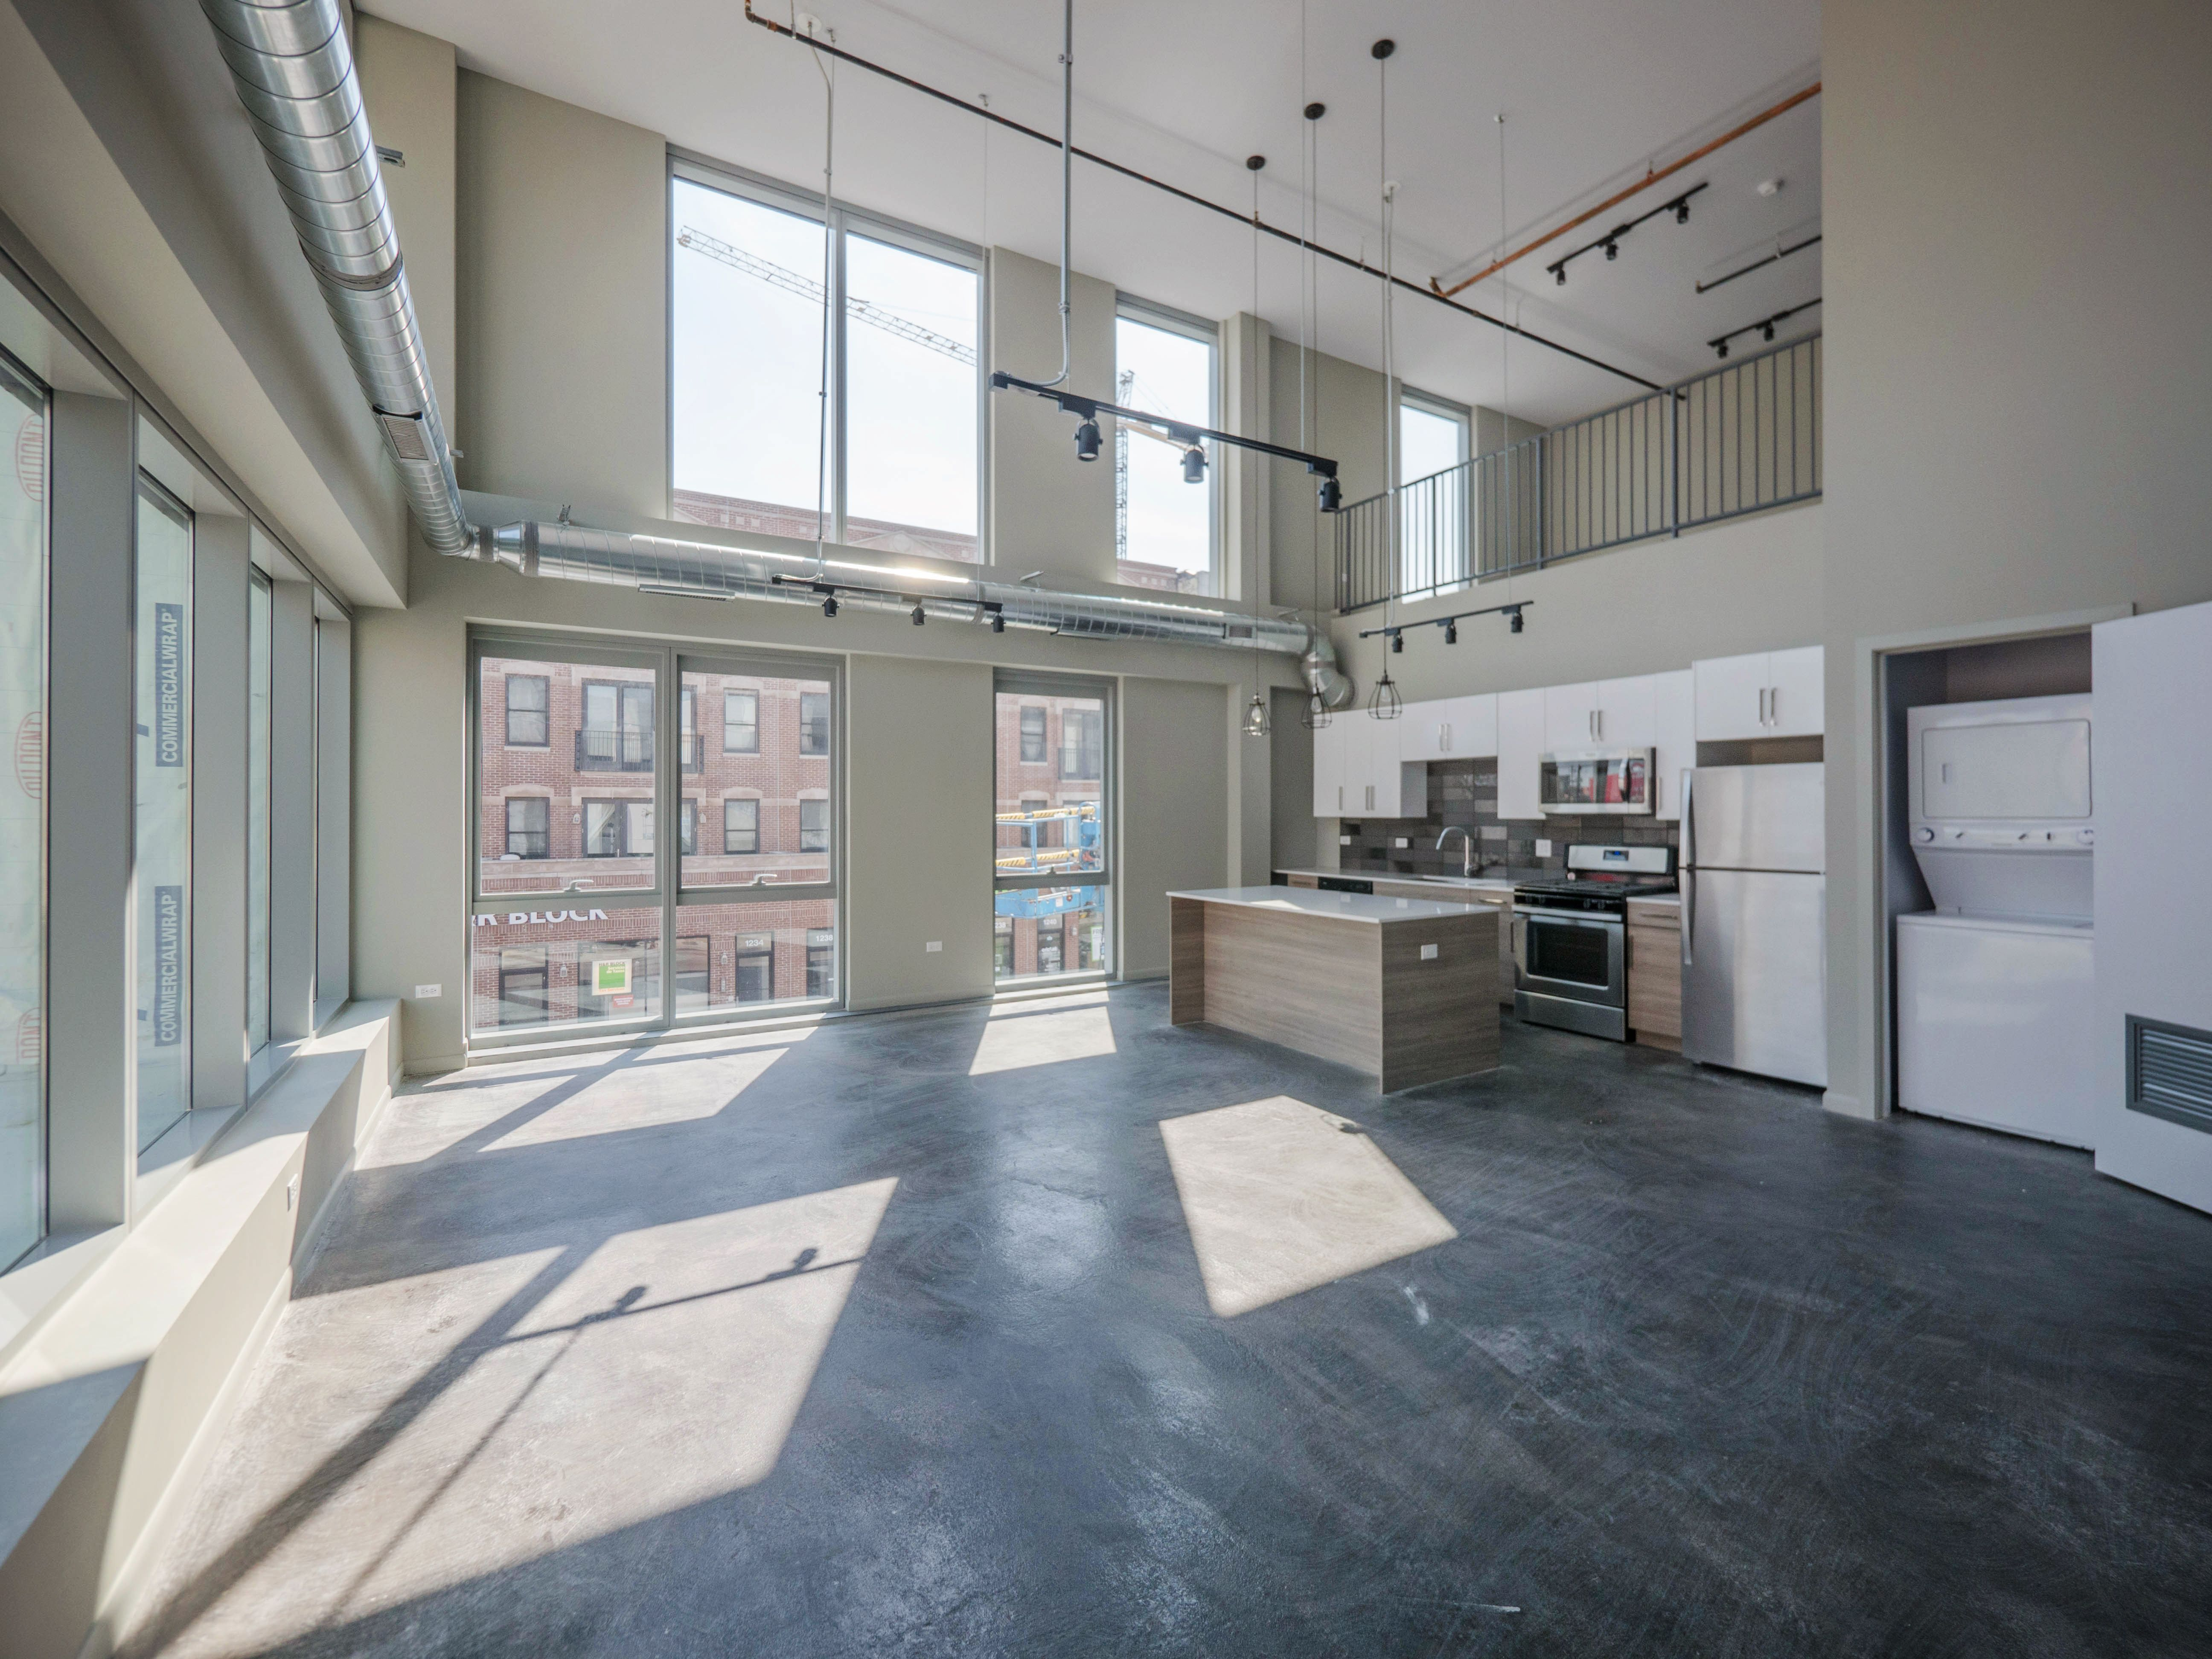 These Brand New Chicago Loft Apartment In Wicker Park Is Loaded With Unique Features Inc Small Loft Apartments Loft Style Apartments Loft Apartment Industrial